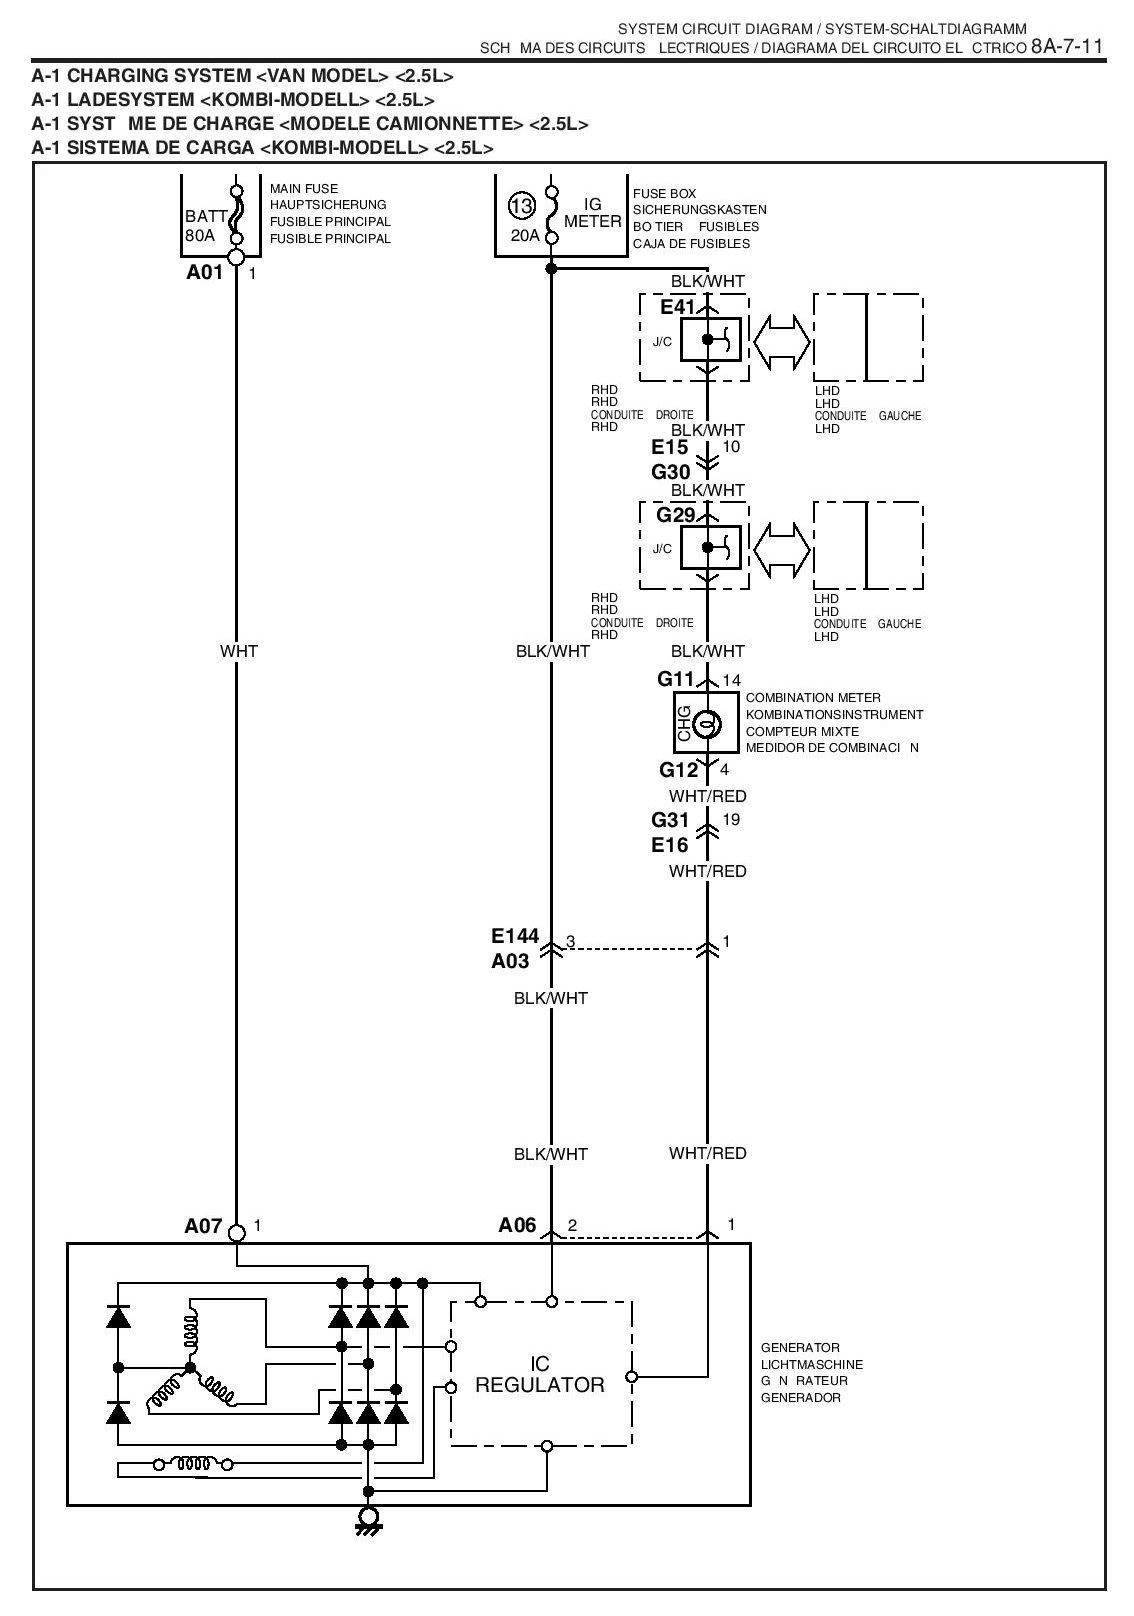 72 nova wiring diagram 3d plant cell for 7th graders charging problems w/good battery & alternator? - page 2 suzuki forums: forum site